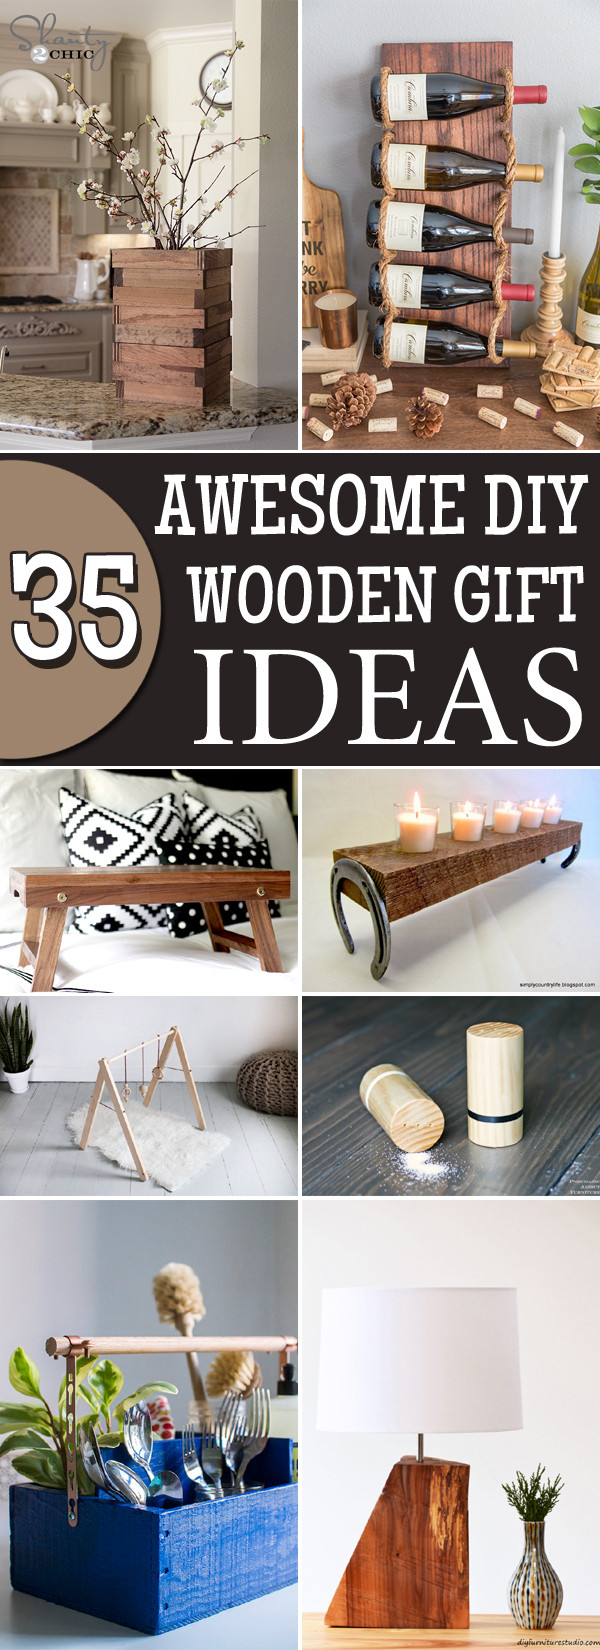 Best ideas about DIY Wood Christmas Gifts . Save or Pin 35 Awesome DIY Wooden Gift Ideas That Everyone Will Love Now.